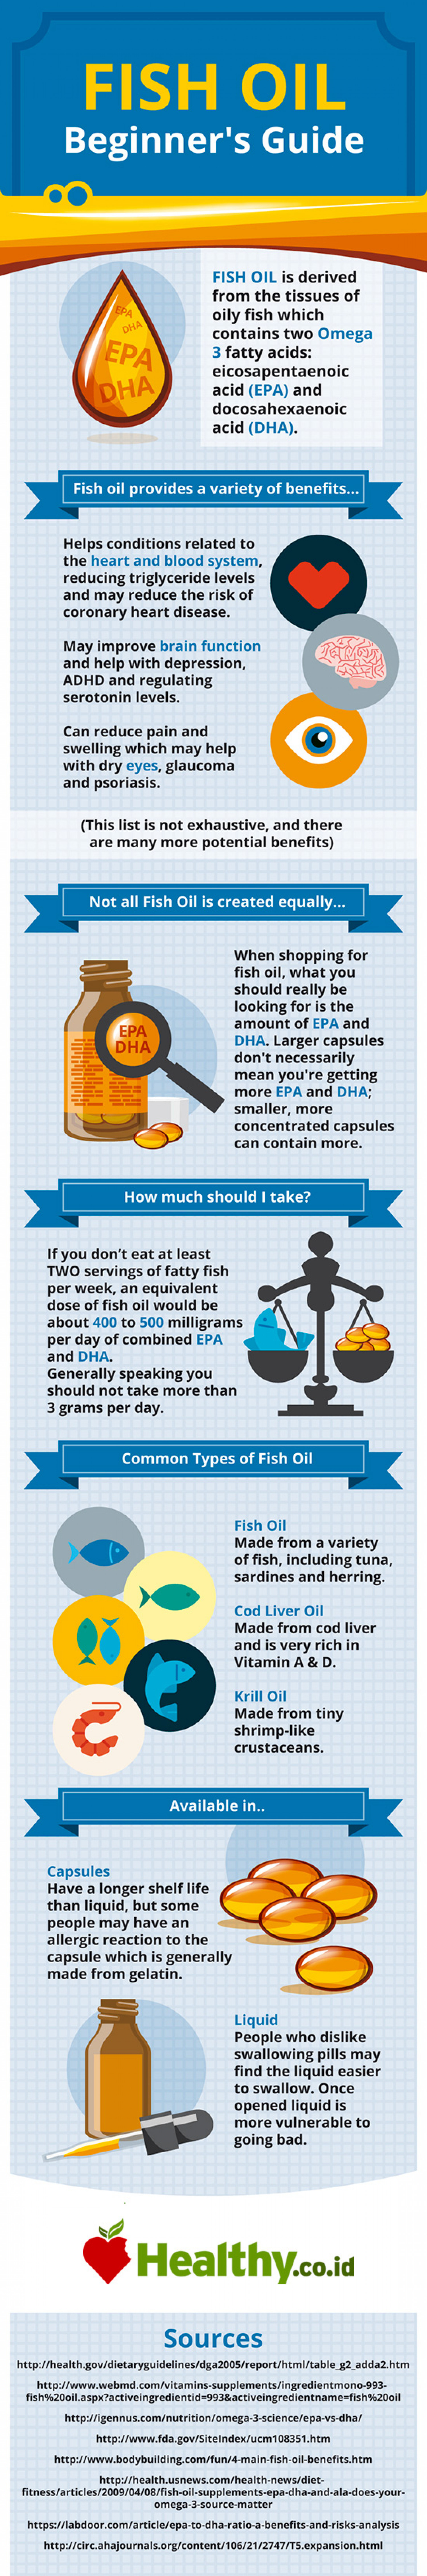 All About Fish Oil Manual Guide